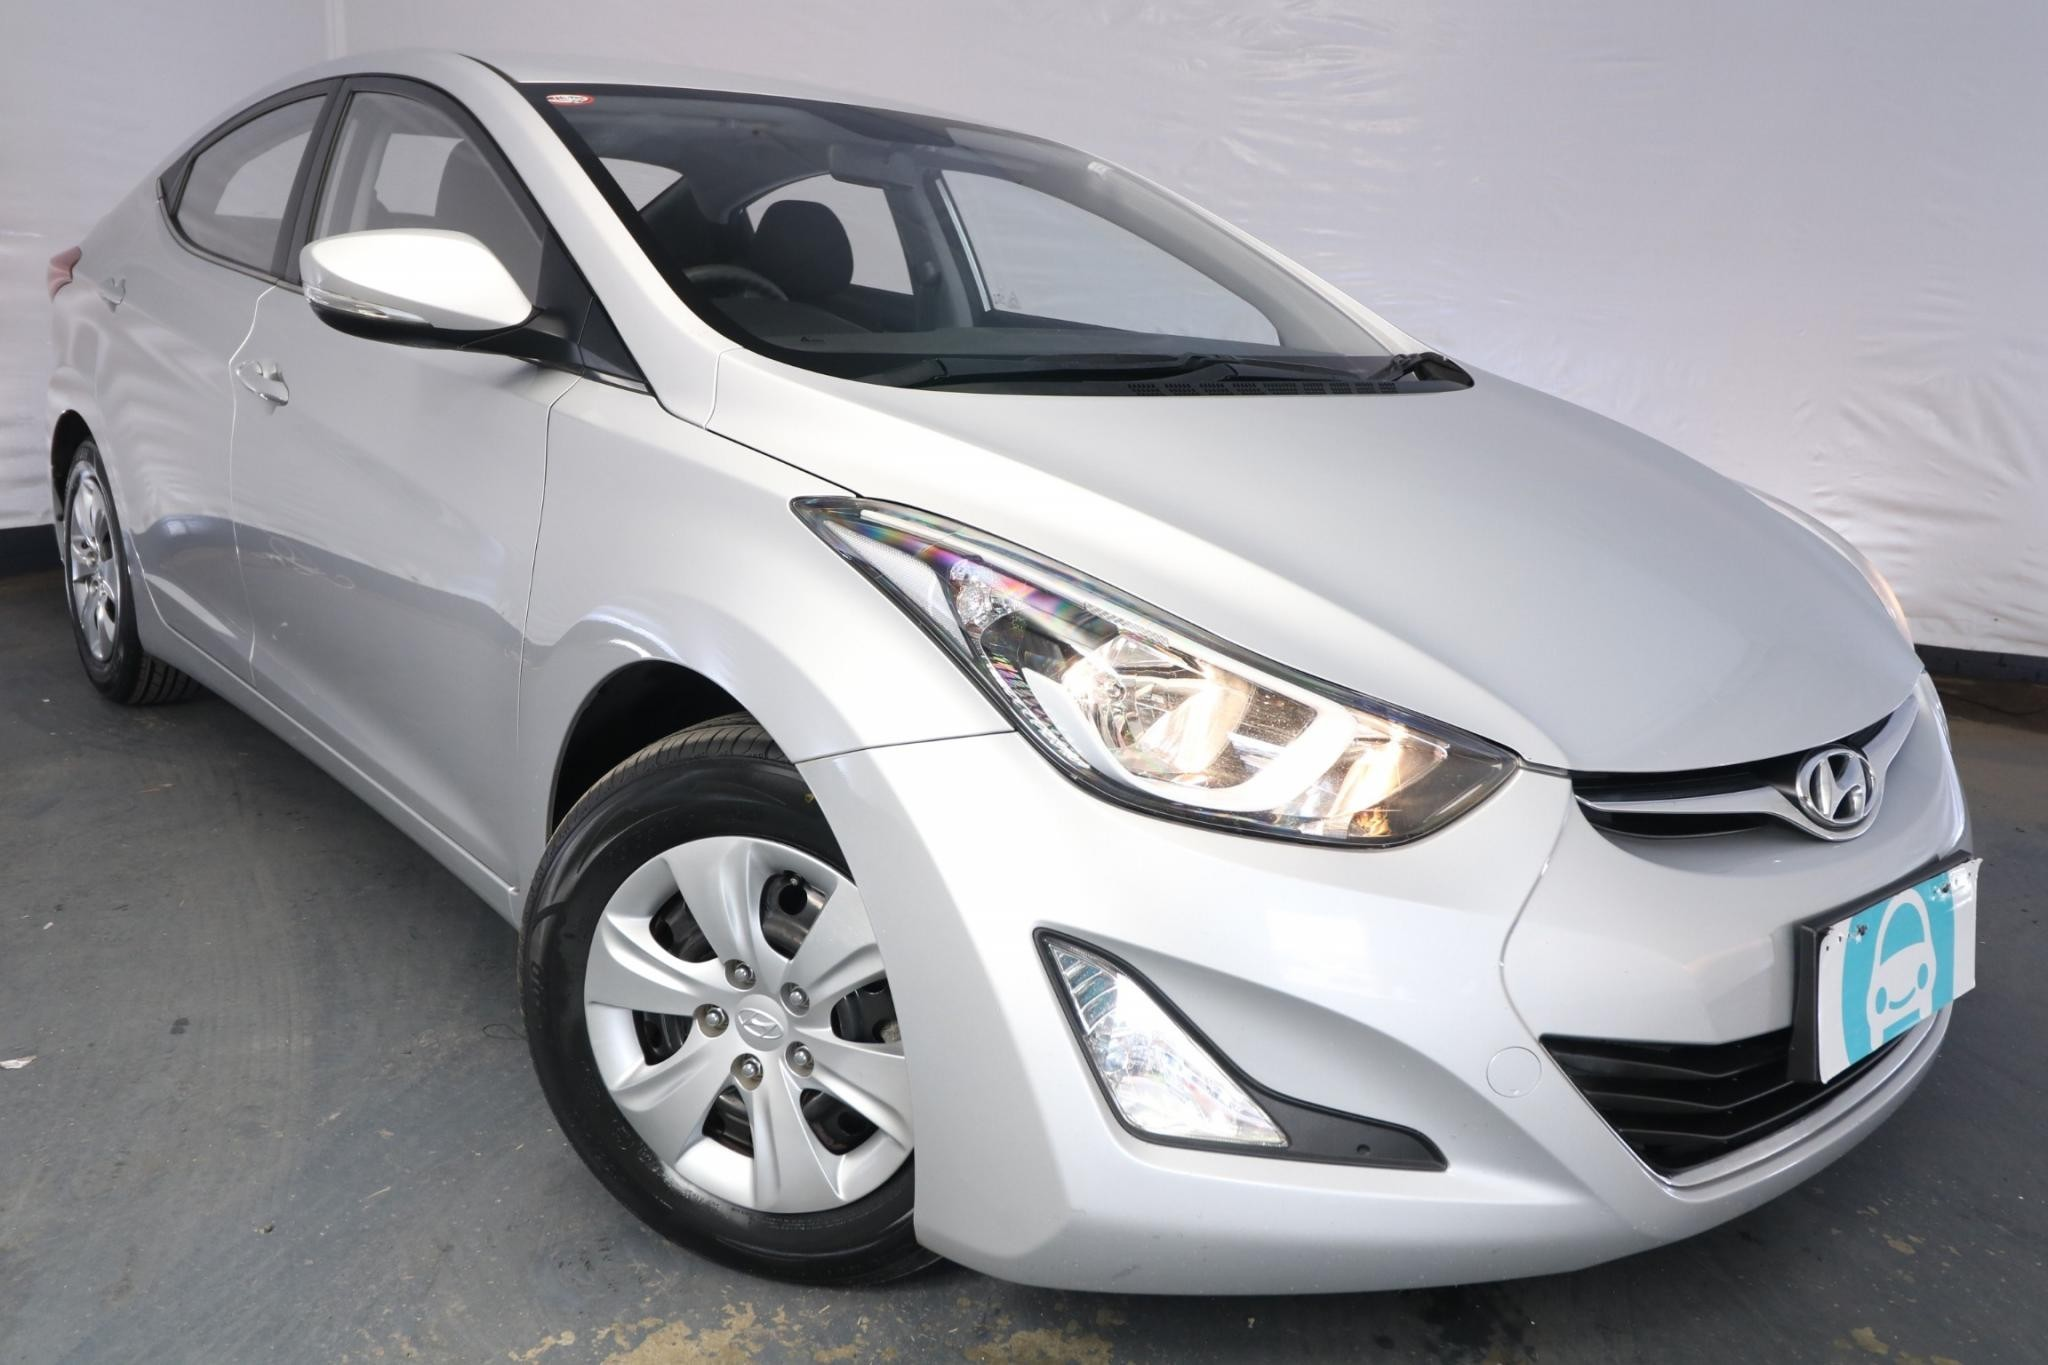 2015 Hyundai Elantra ACTIVE MD SERIES 2 (MD3) / 6 Speed Automatic / Sedan / 1.8L / 4 Cylinder / Petrol / 4x2 / 4 door / January release QII15A